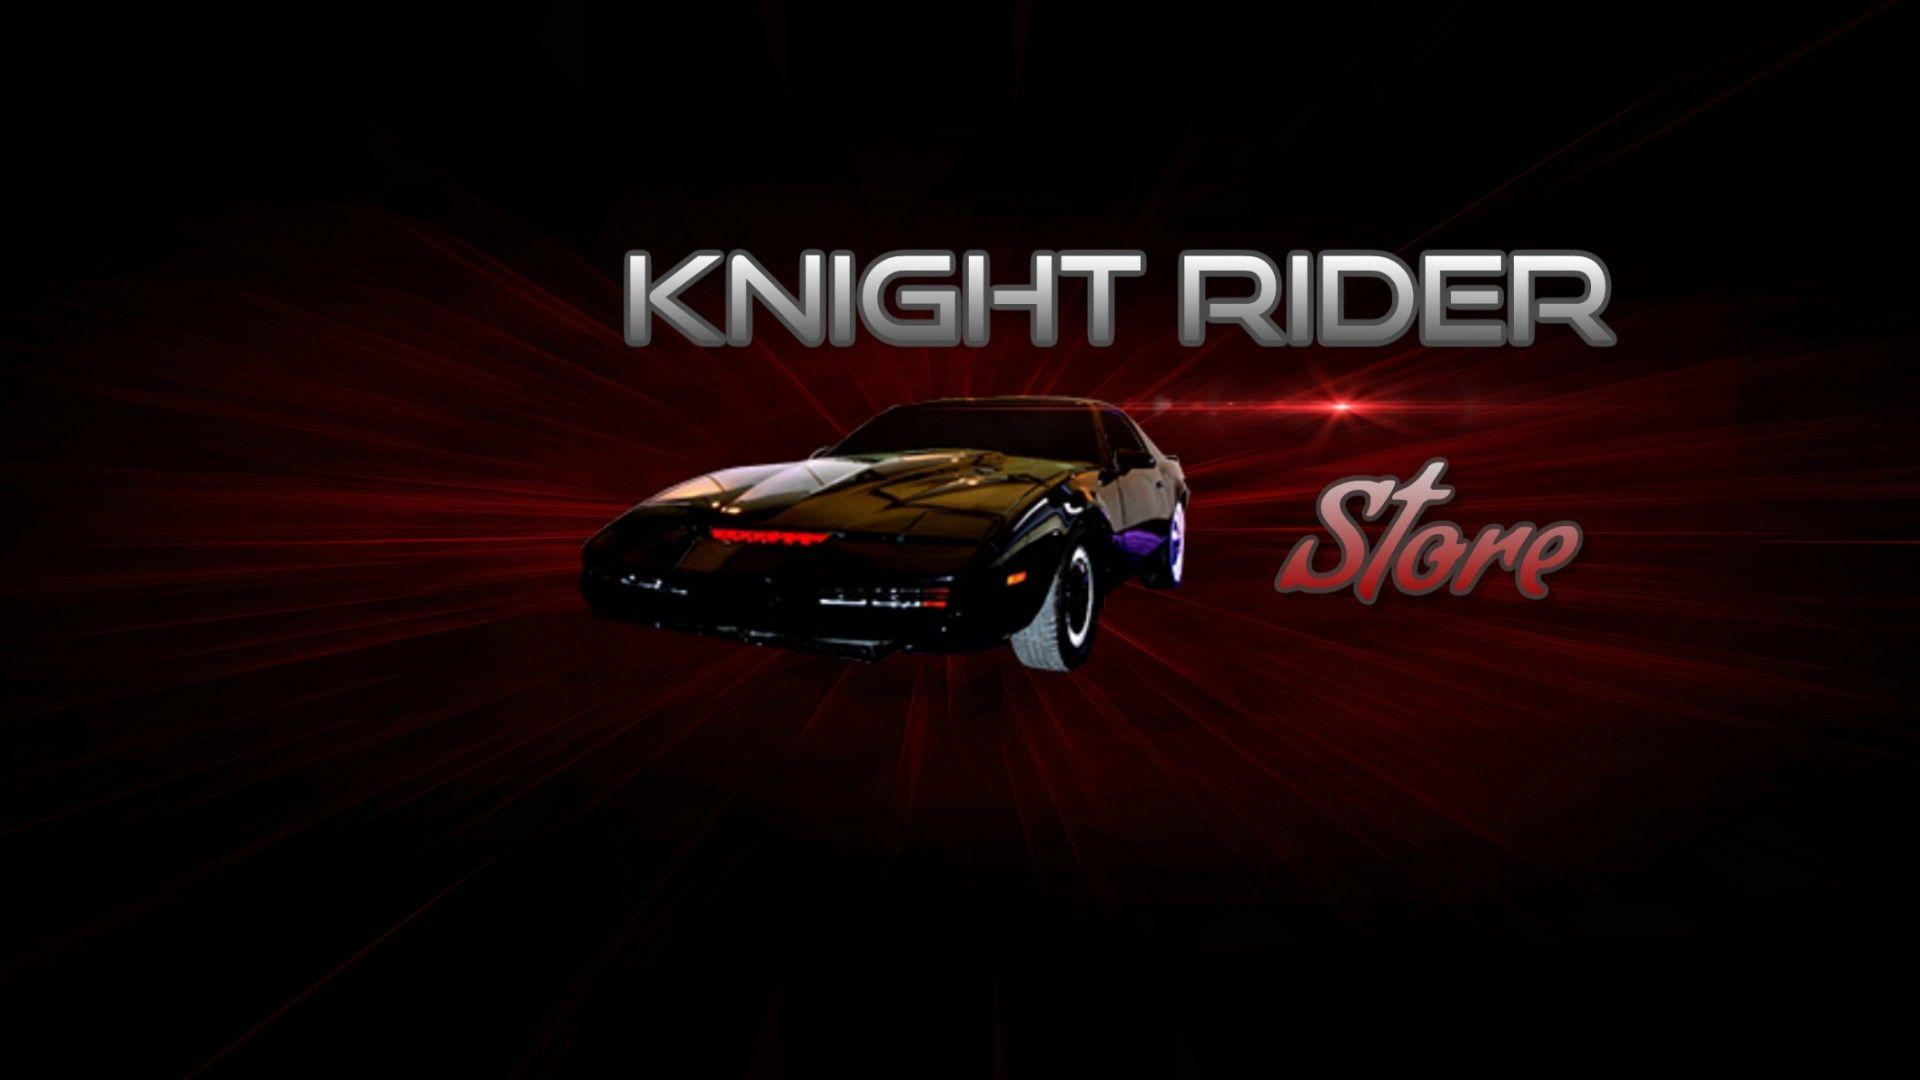 Knight Rider Live Wallpaper - HD Wallpaper Collections